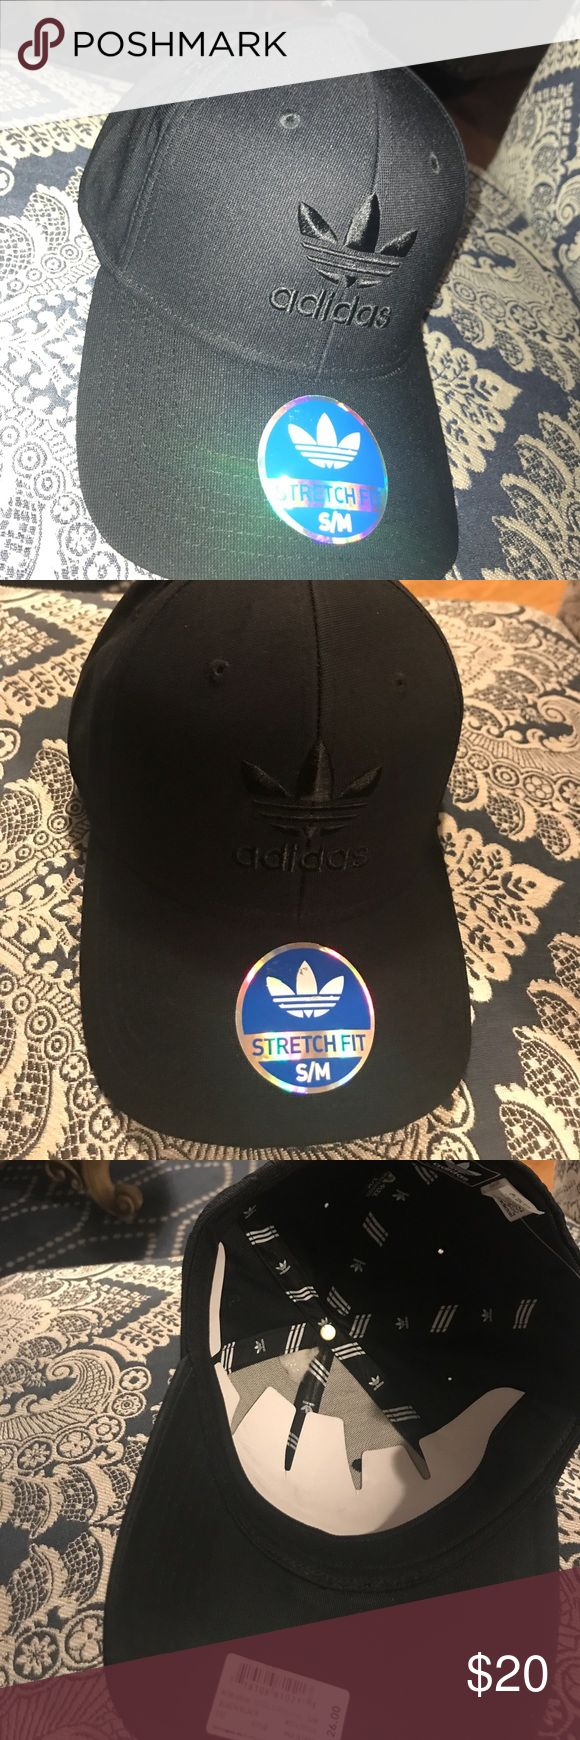 Brand New ADIDAS baseball cap All Black Adidas Baseball cap. Size S/M. Stretch Fit. adidas Accessories Hats